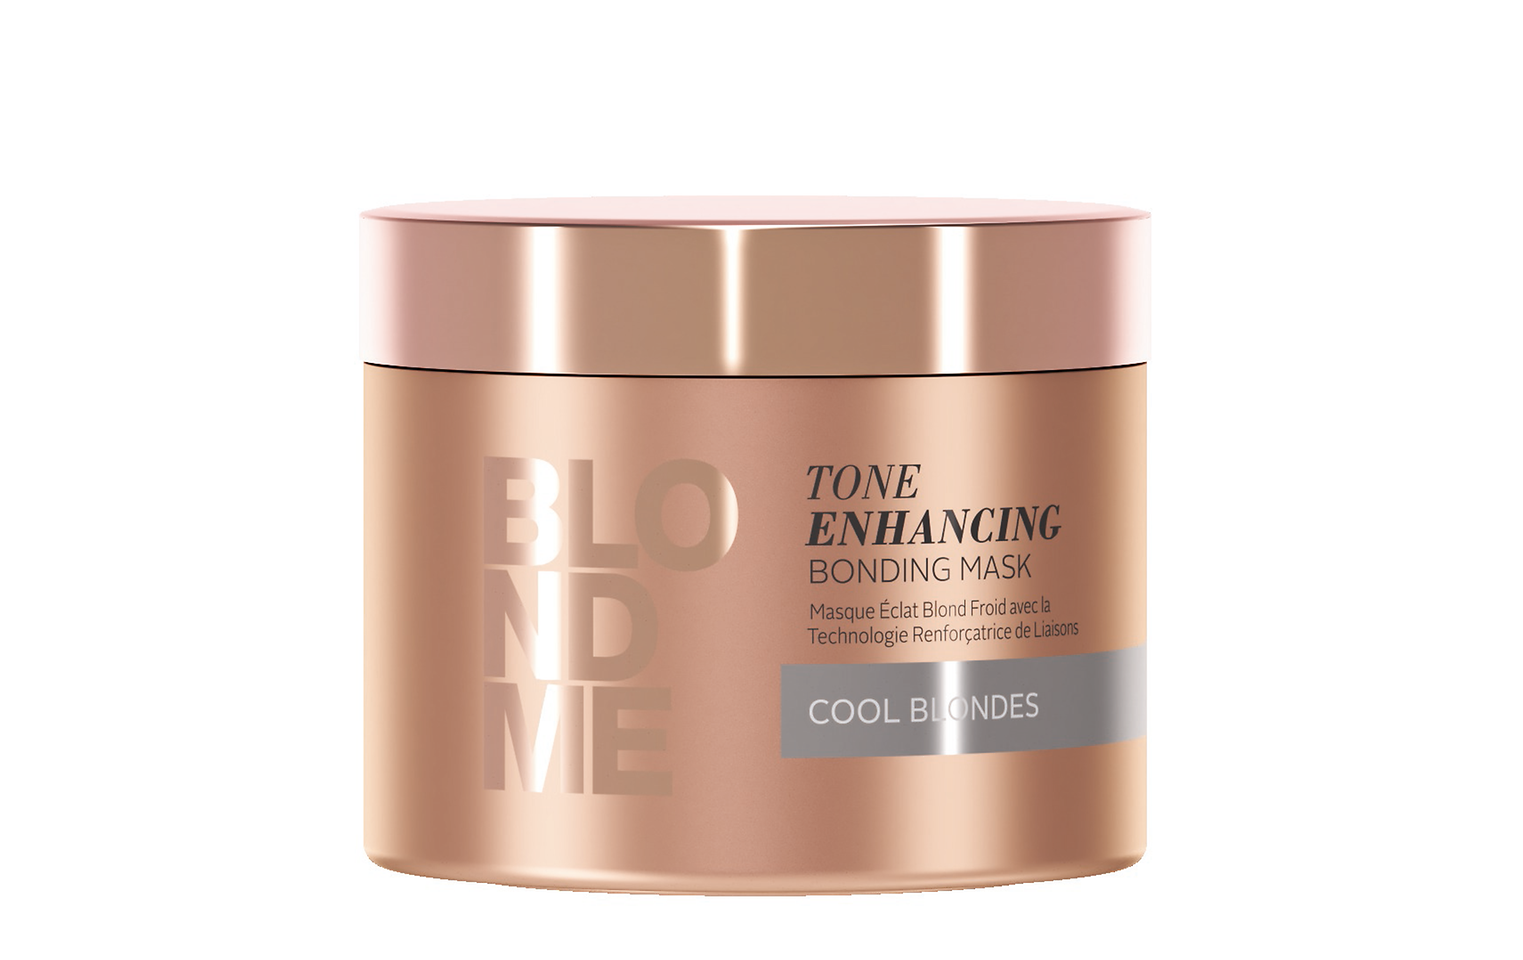 Tone Enhancing Bonding Mask - Cool Blondes